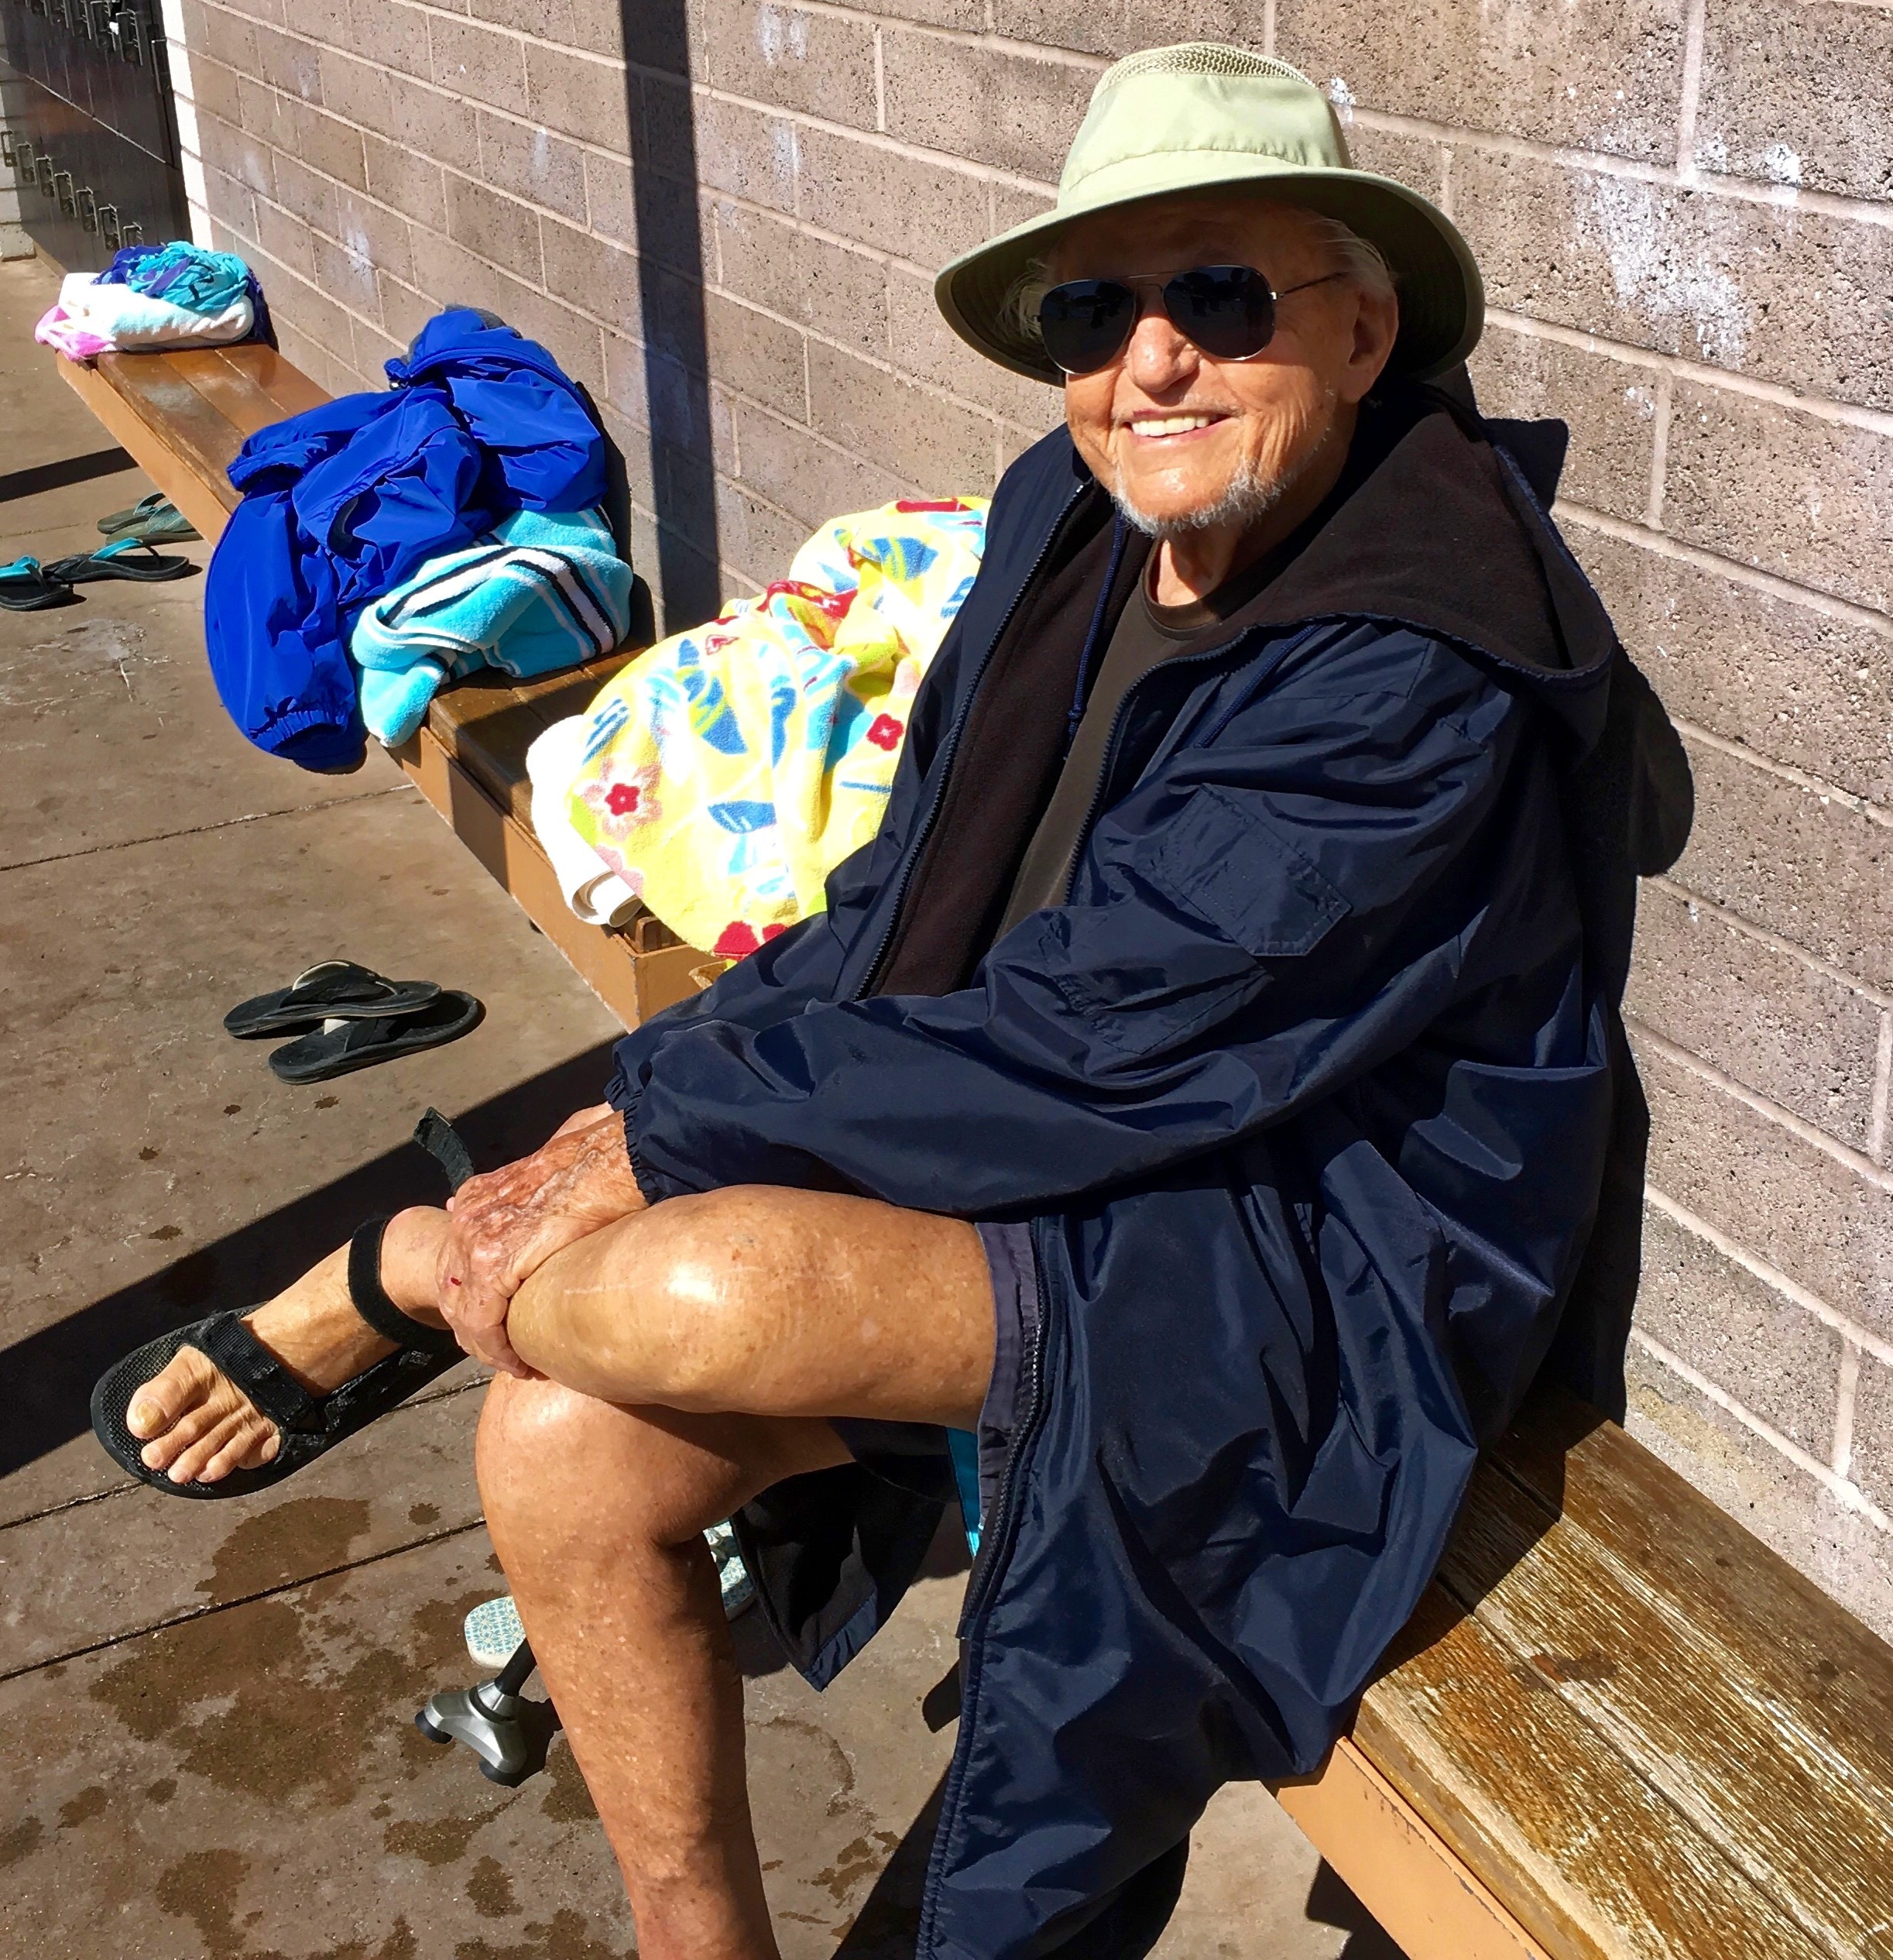 My Dad drying off after a swim. The guy is amazing. It was such a pleasure to see him on this trip...